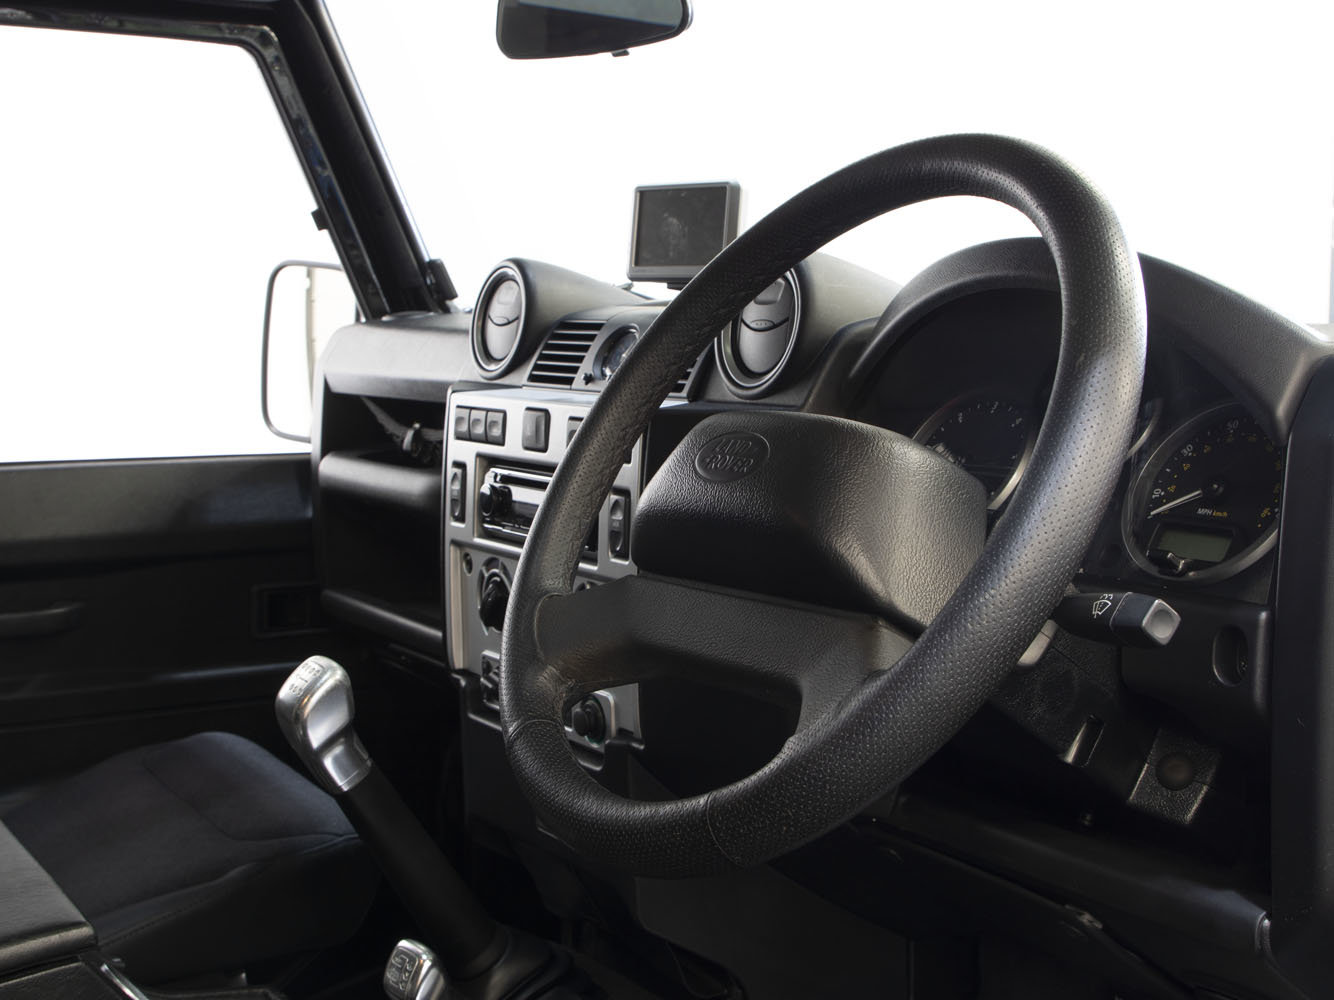 2008 08 58 LAND ROVER DEFENDER 90 SVX 60TH ANNIVERSARY EDITION For Sale (picture 5 of 6)